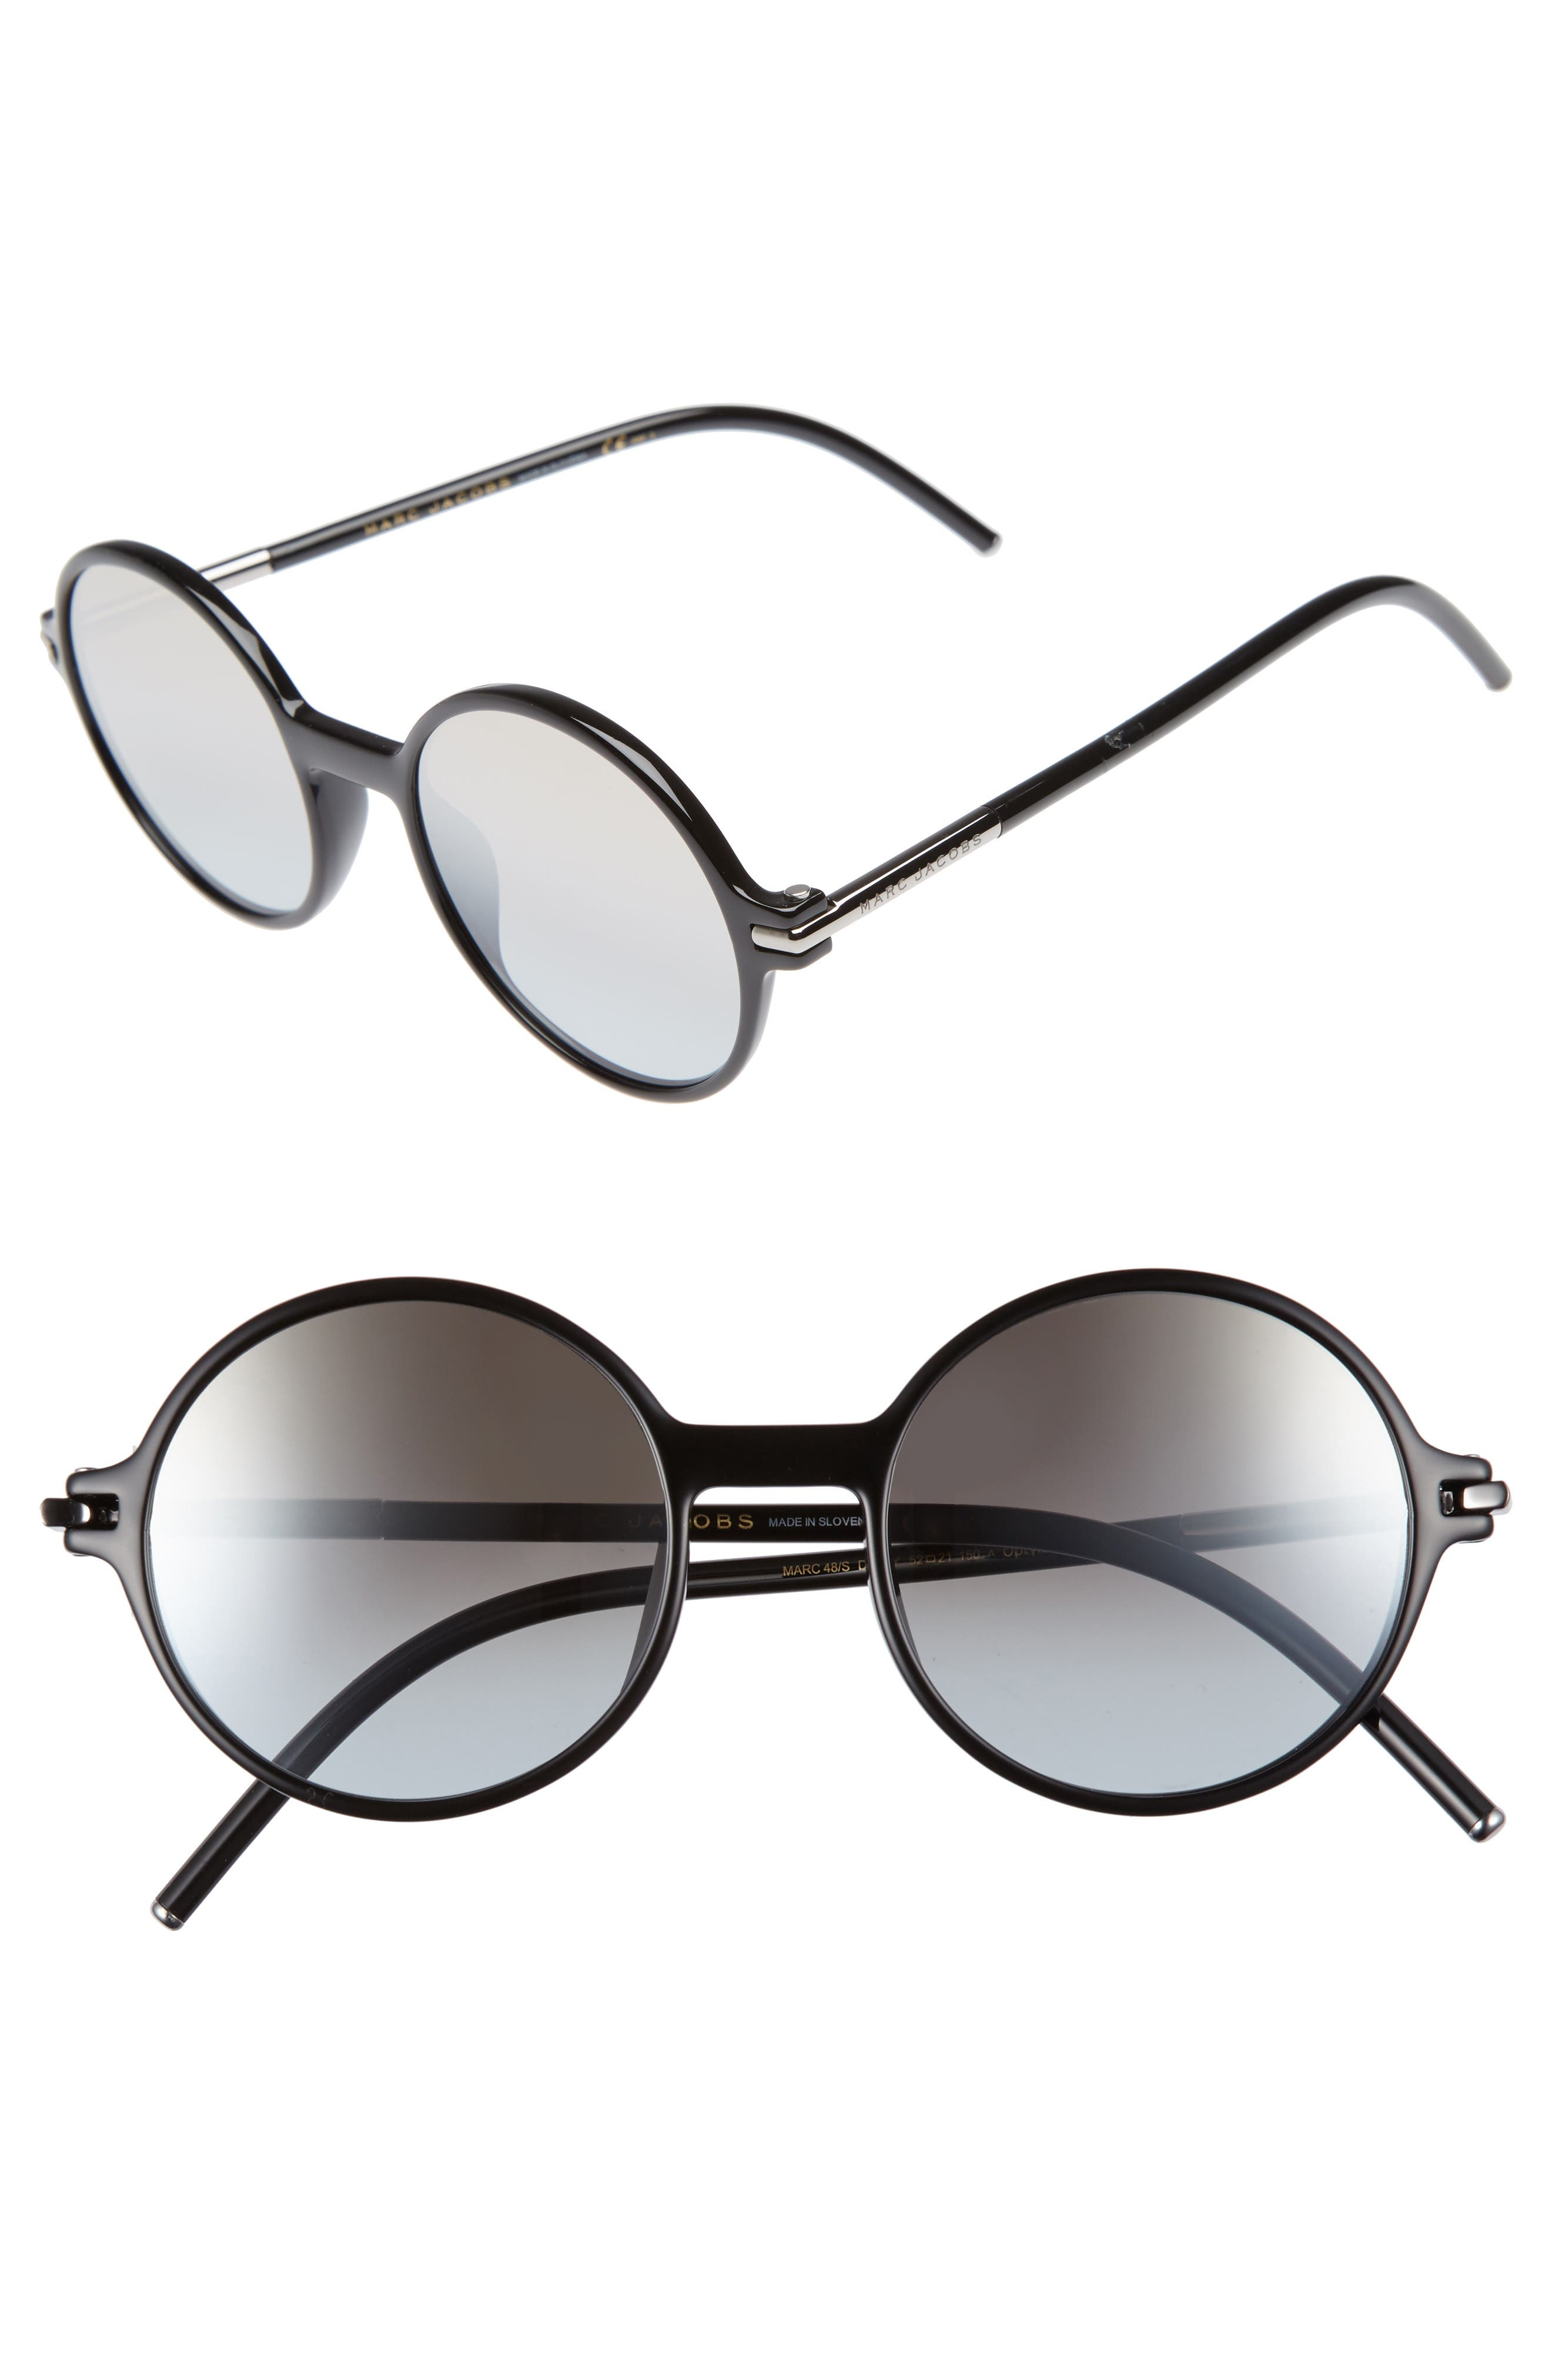 Main Image - MARC JACOBS 52mm Round Sunglasses